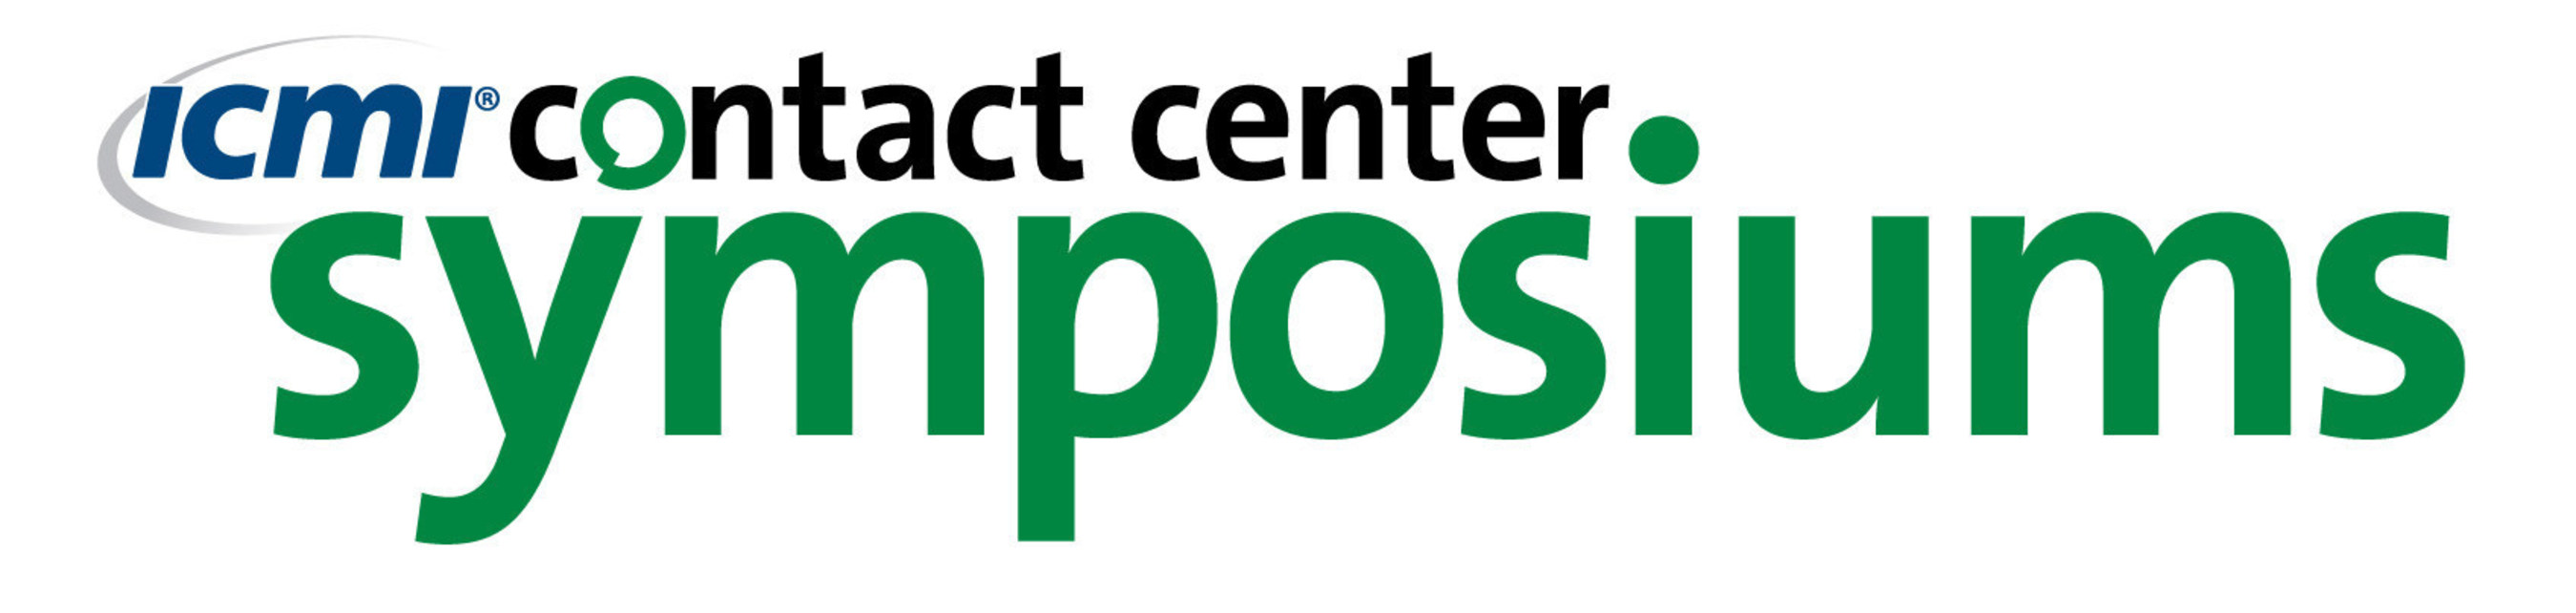 ICMI, the leading global provider of comprehensive resources for customer management professionals, today announced its local Call Center Site Tours during the first Contact Center Training Symposium in 2015. The first 2015 Contact Center Training Symposium will take place March 17-20, 2015 in San Diego, CA.